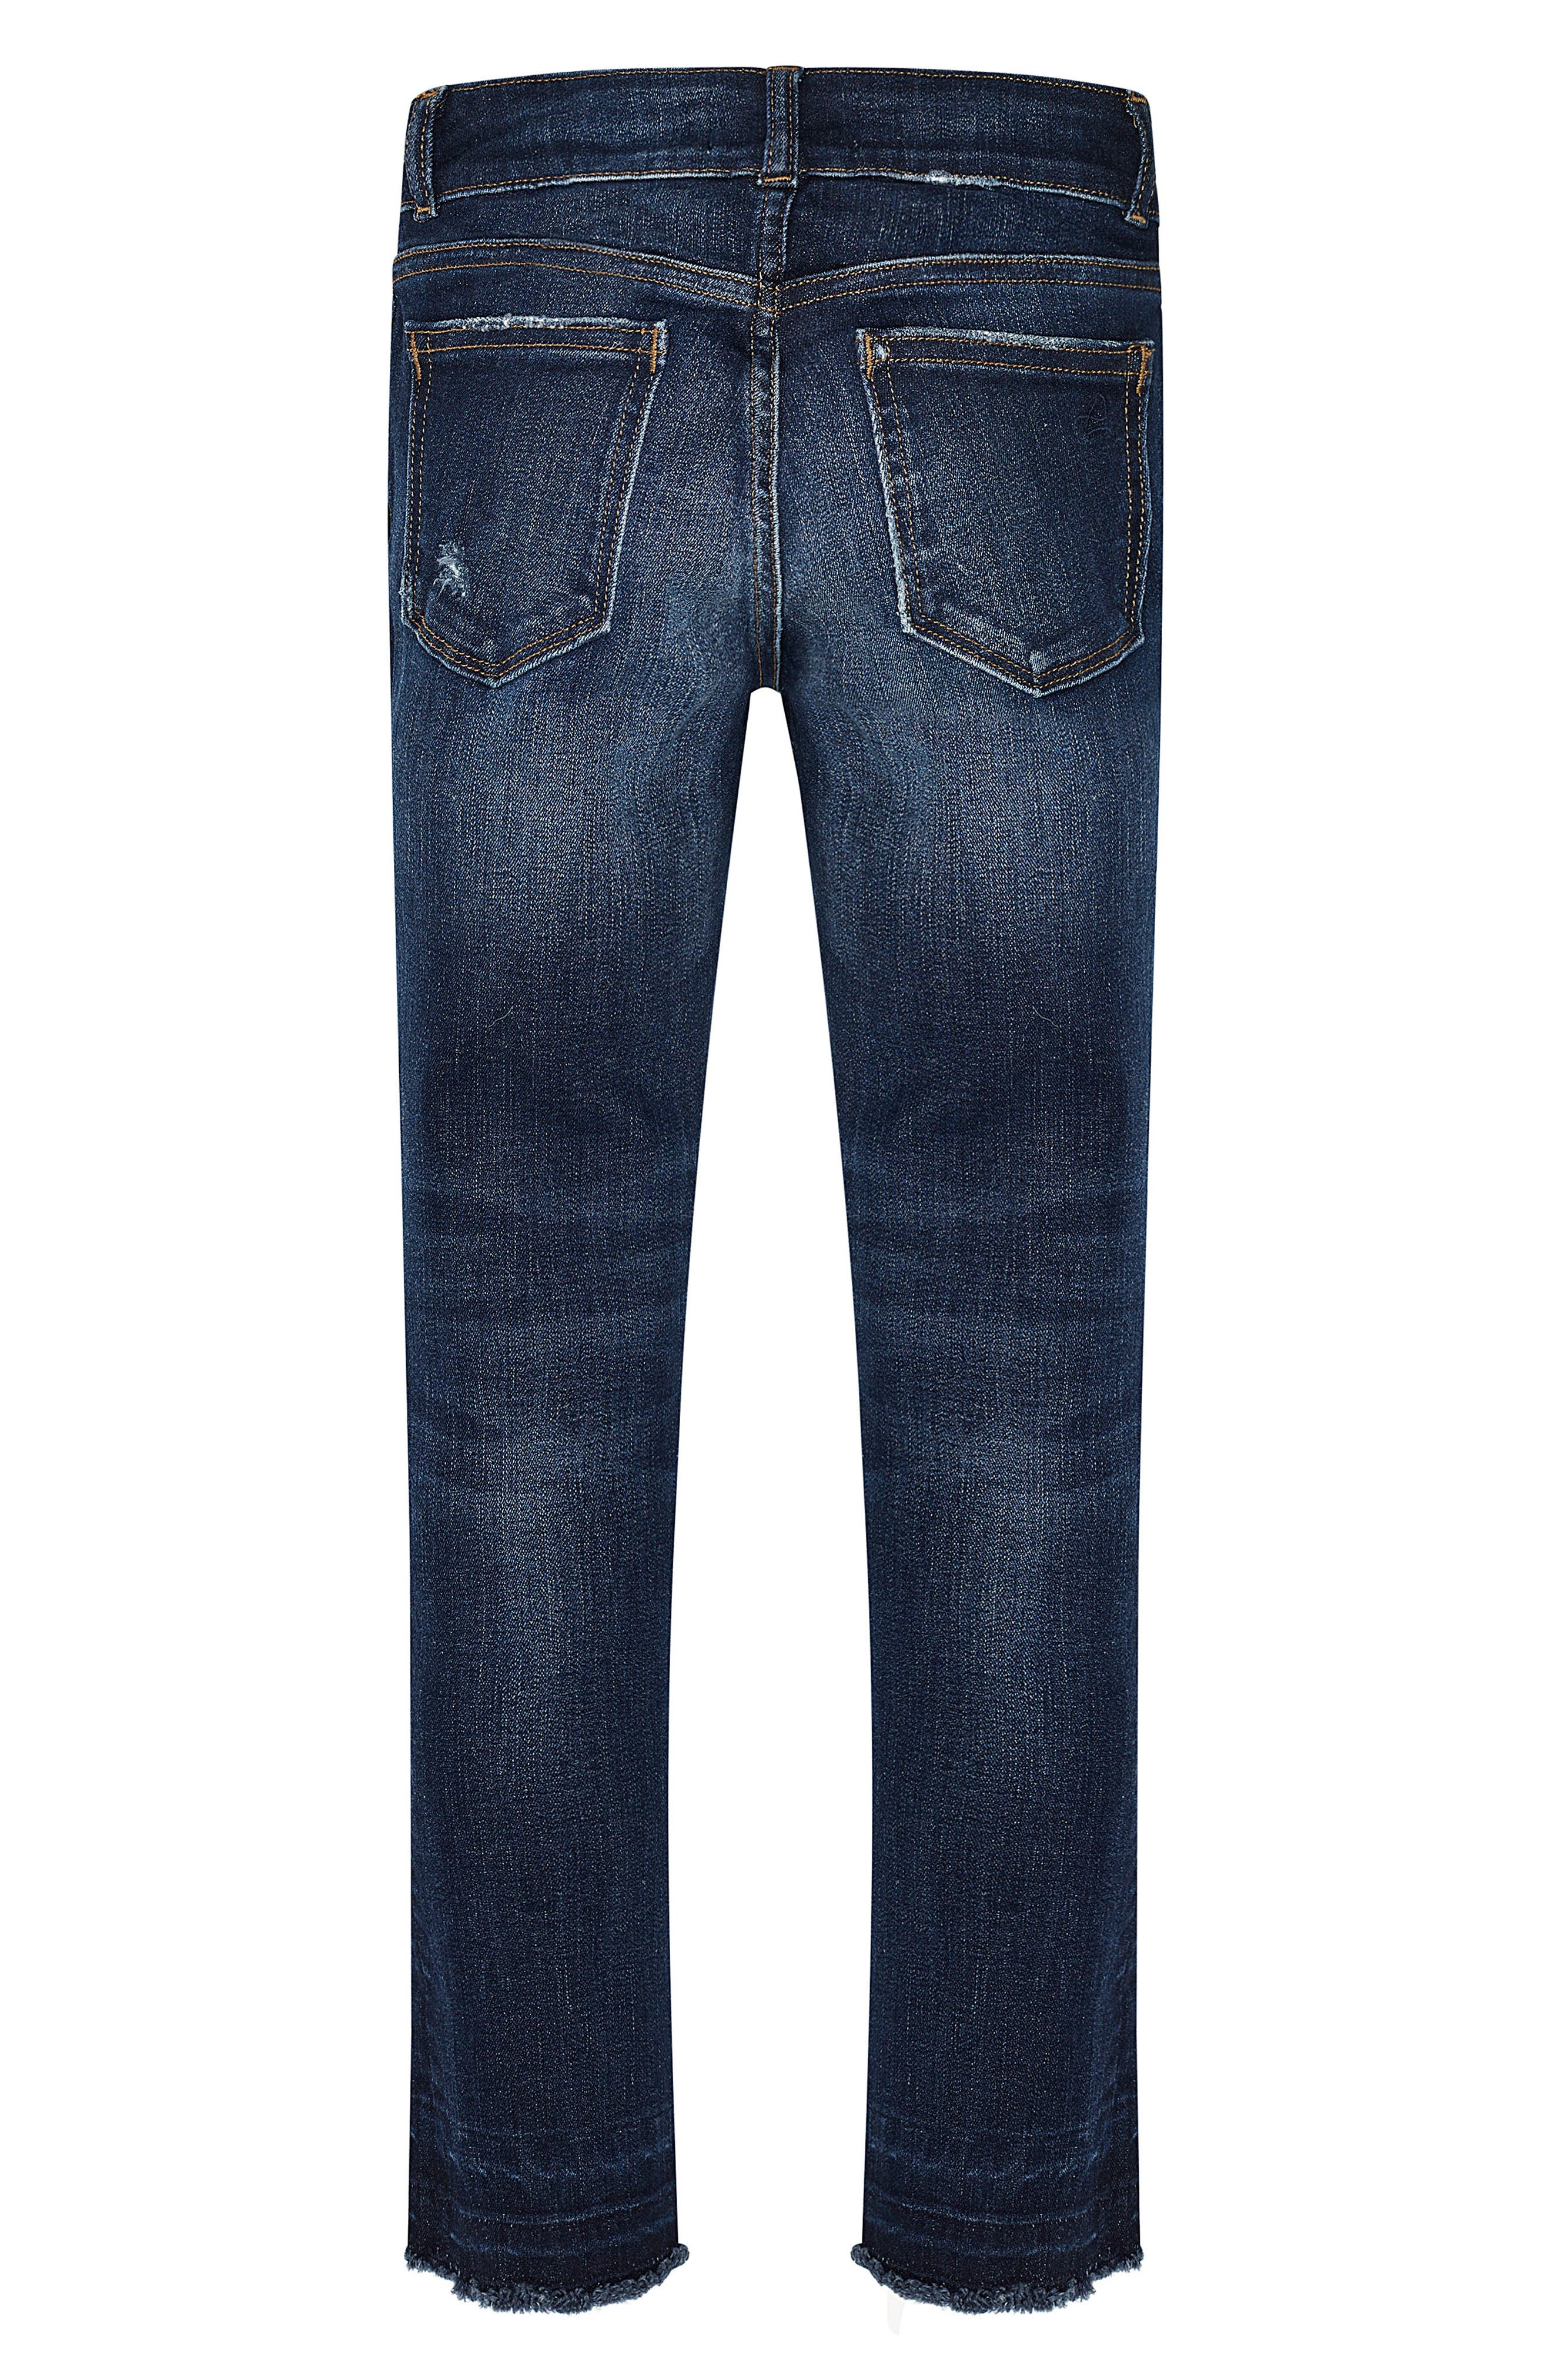 Chloe Distressed Skinny Jeans,                             Alternate thumbnail 2, color,                             Caruso